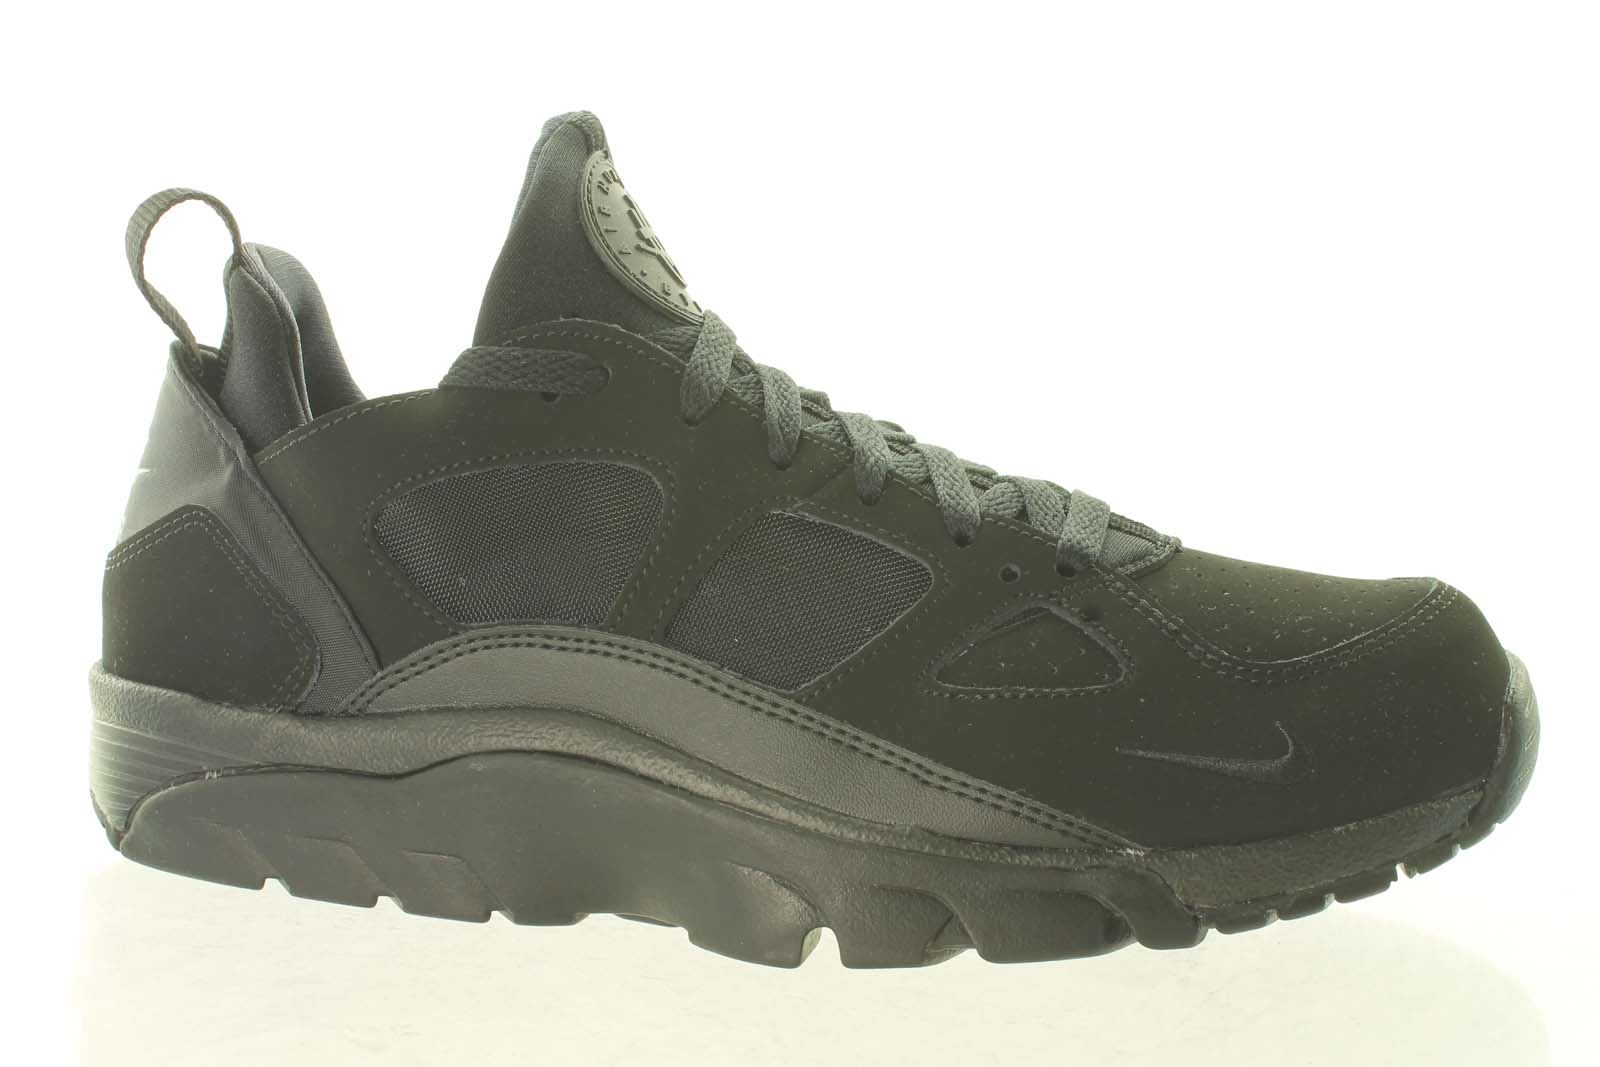 e3e5988edd885 Nike Air Trainer Huarache Low 749447-001 Mens Trainers~UK SIZE 7 ...